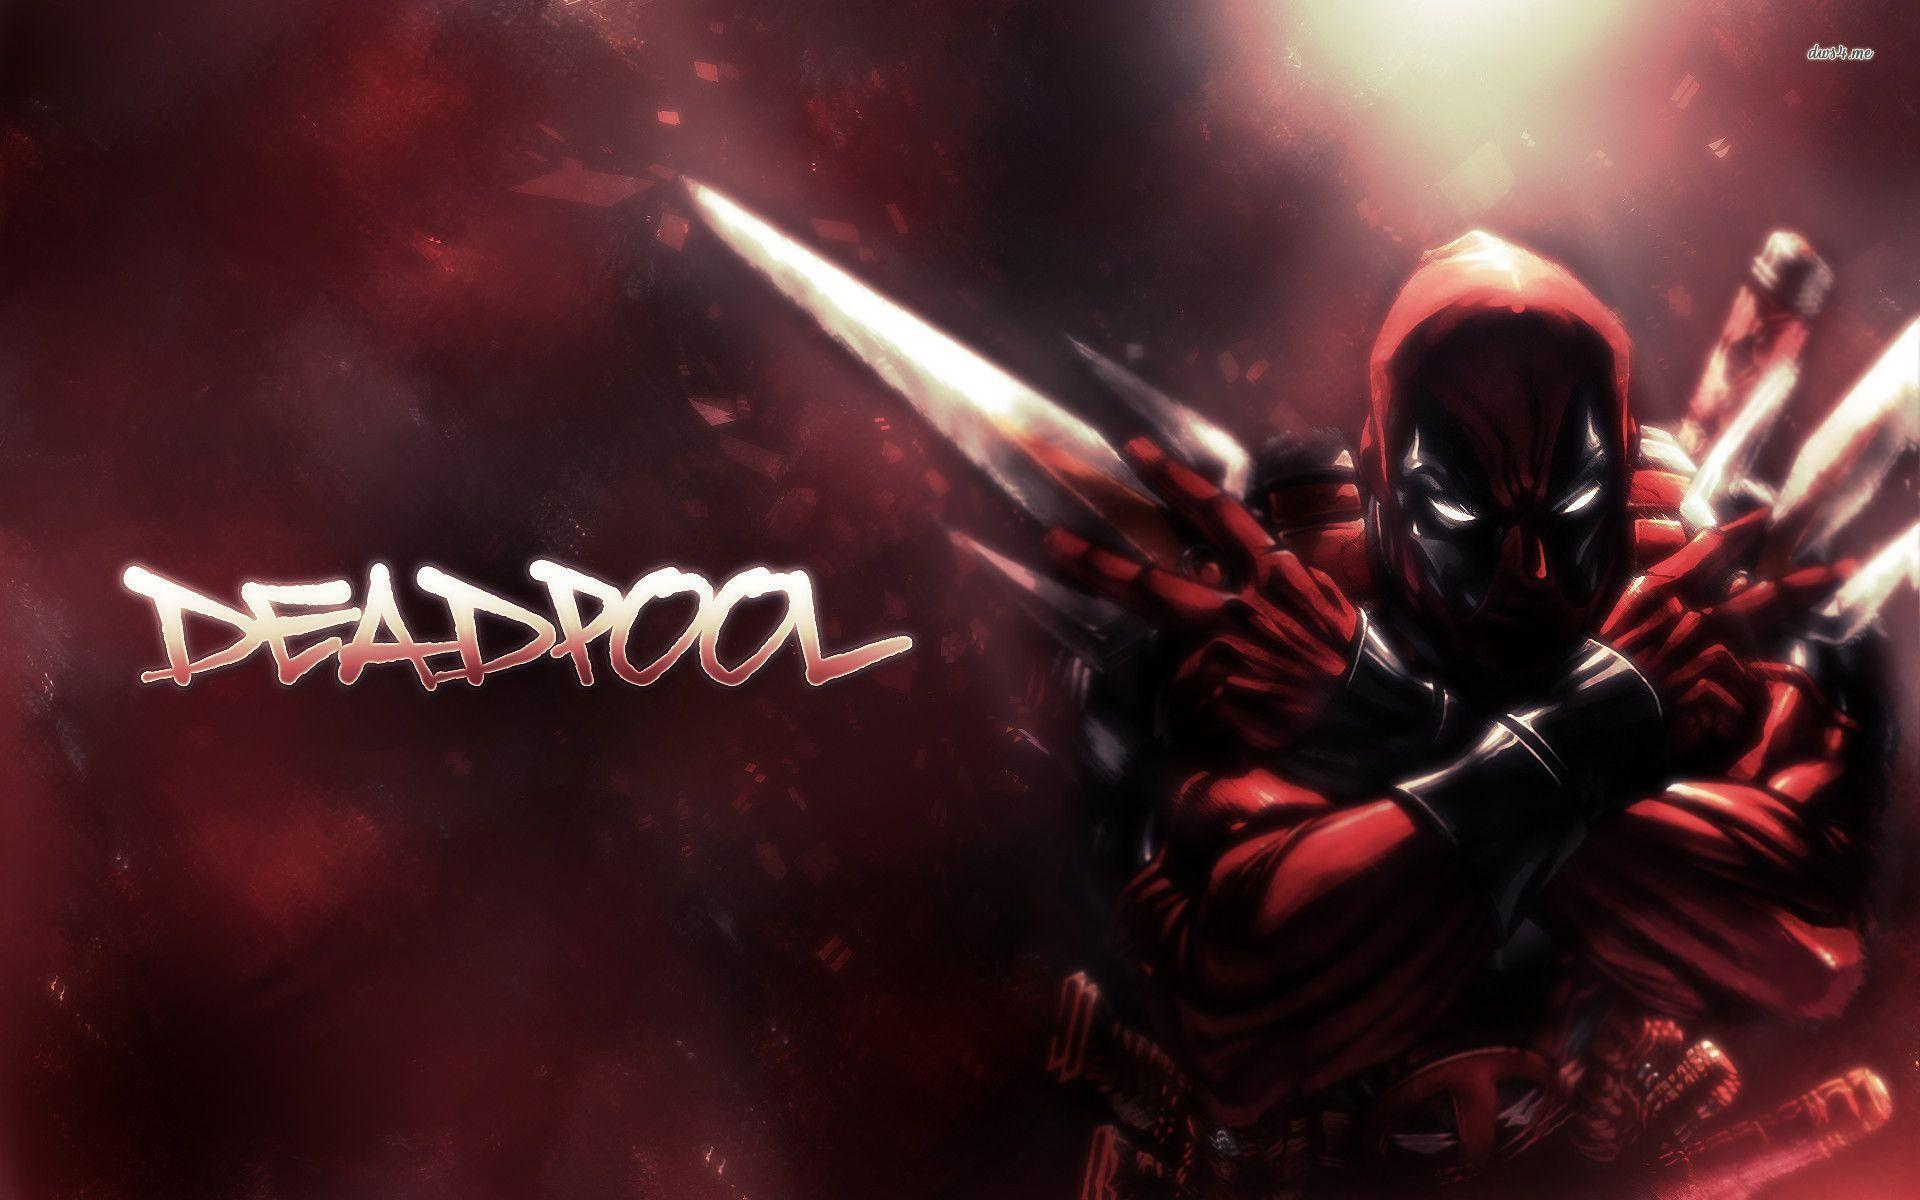 Deadpool Wallpapers - Full HD wallpaper search